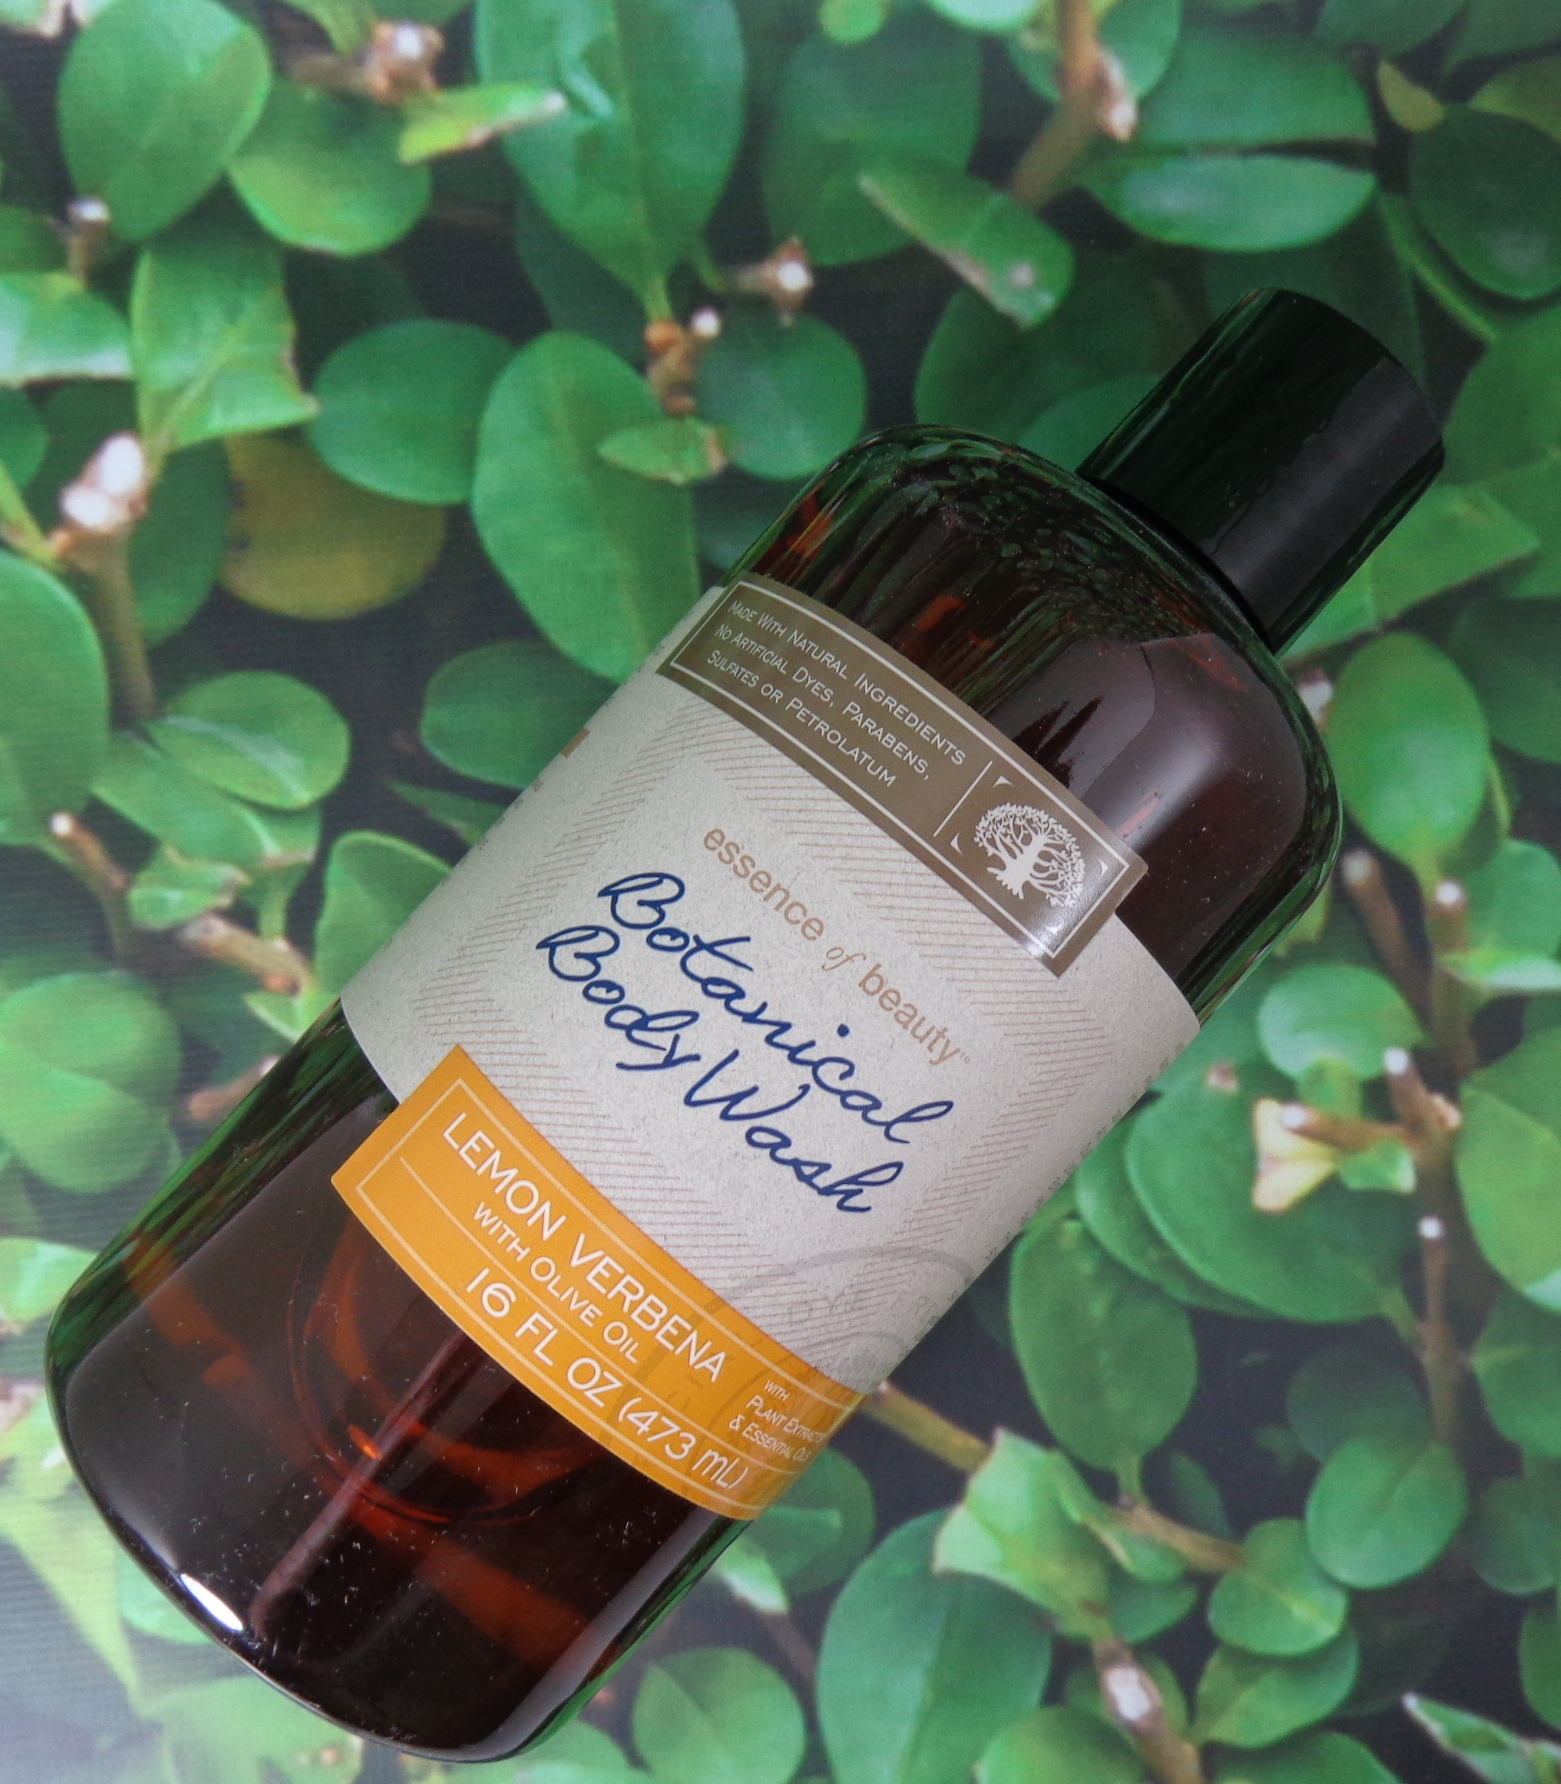 Affordable Bath and Body: Essence of Beauty at CVS - My Highest Self